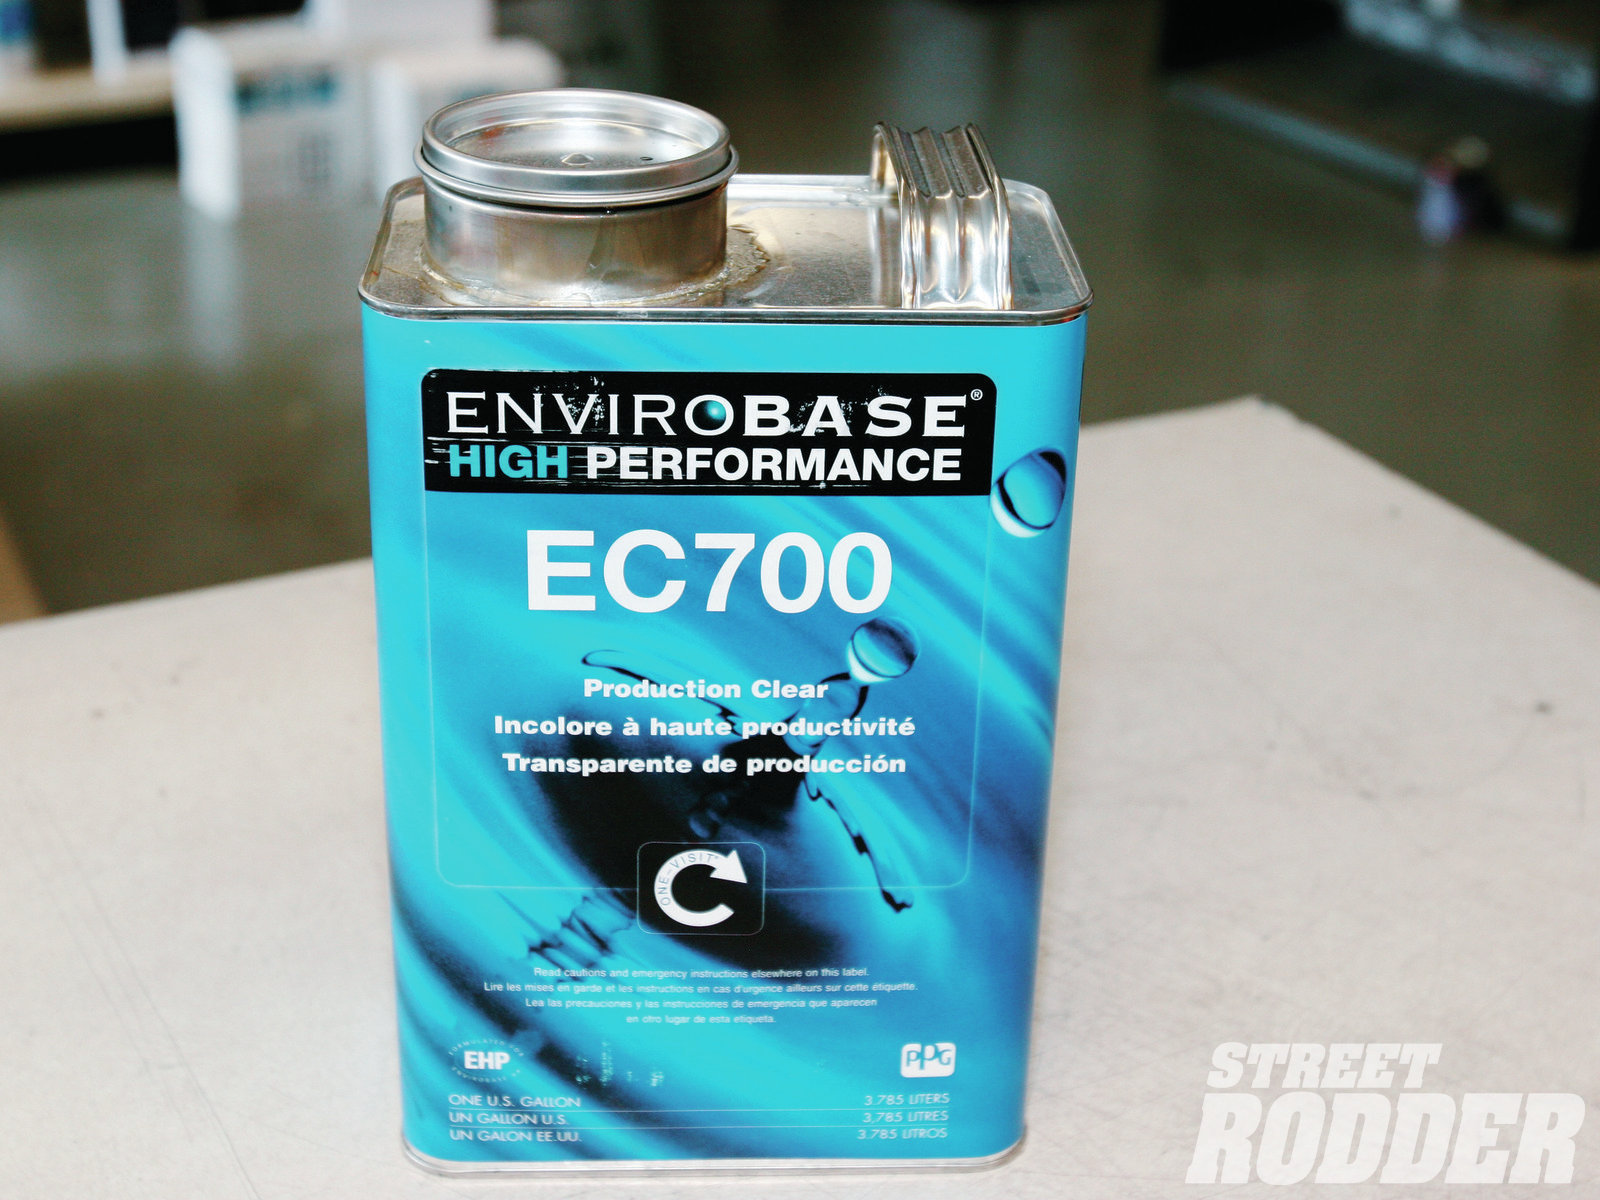 EC700 clear is designed to be used over Envirobase basecoat. Intended for high production body shops, this product is referred to as one-visit technology, which means there is no flash time between coats.